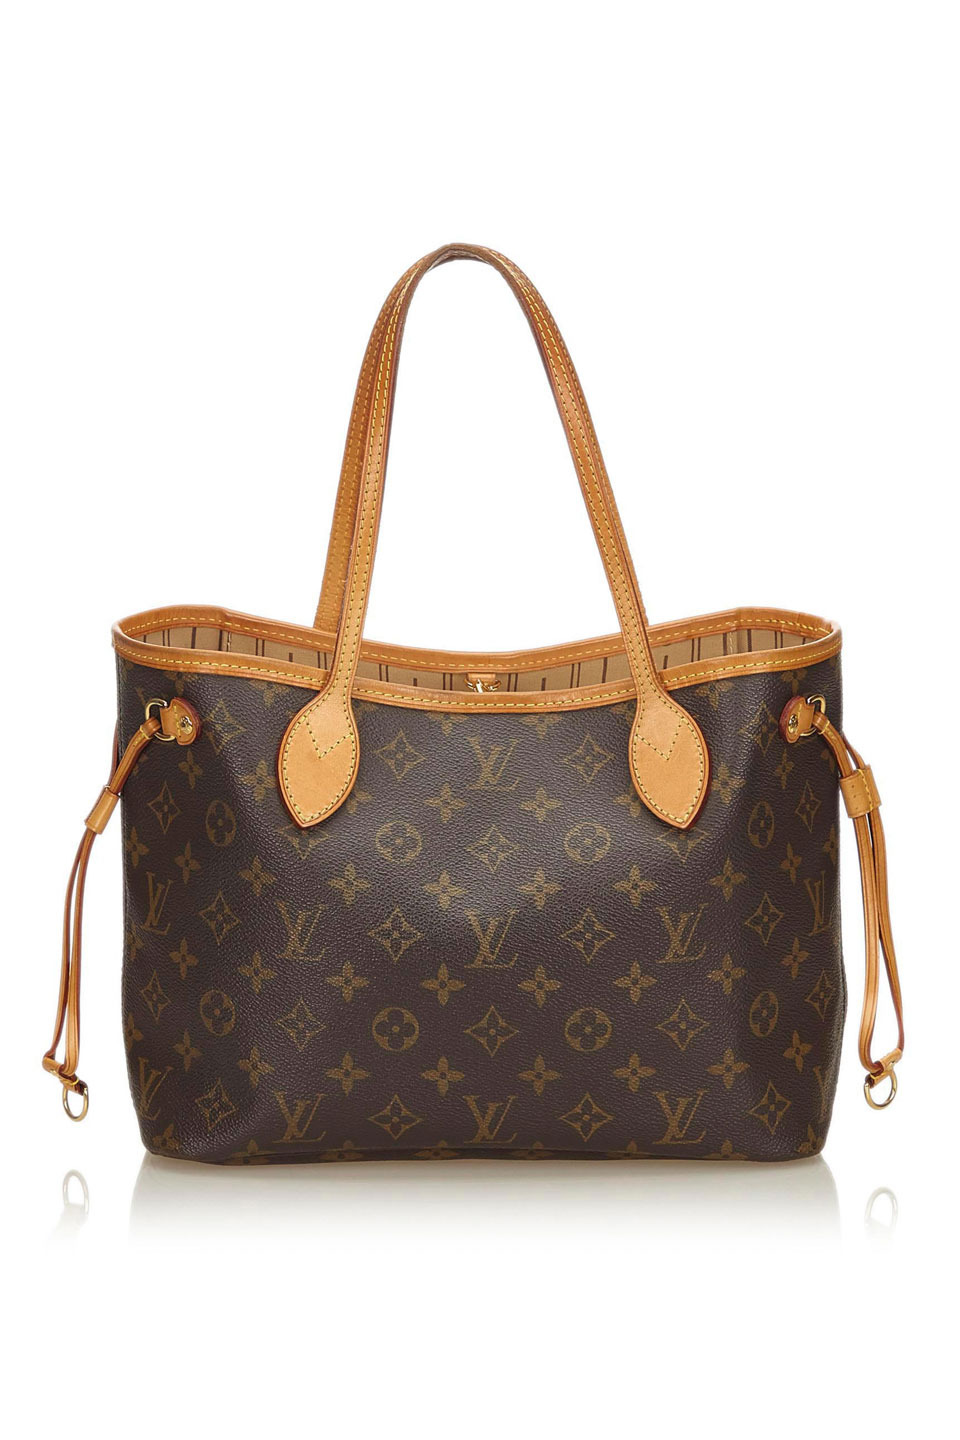 LOUIS VUITTON MONOGRAM NEVERFULL PM IN BROWN